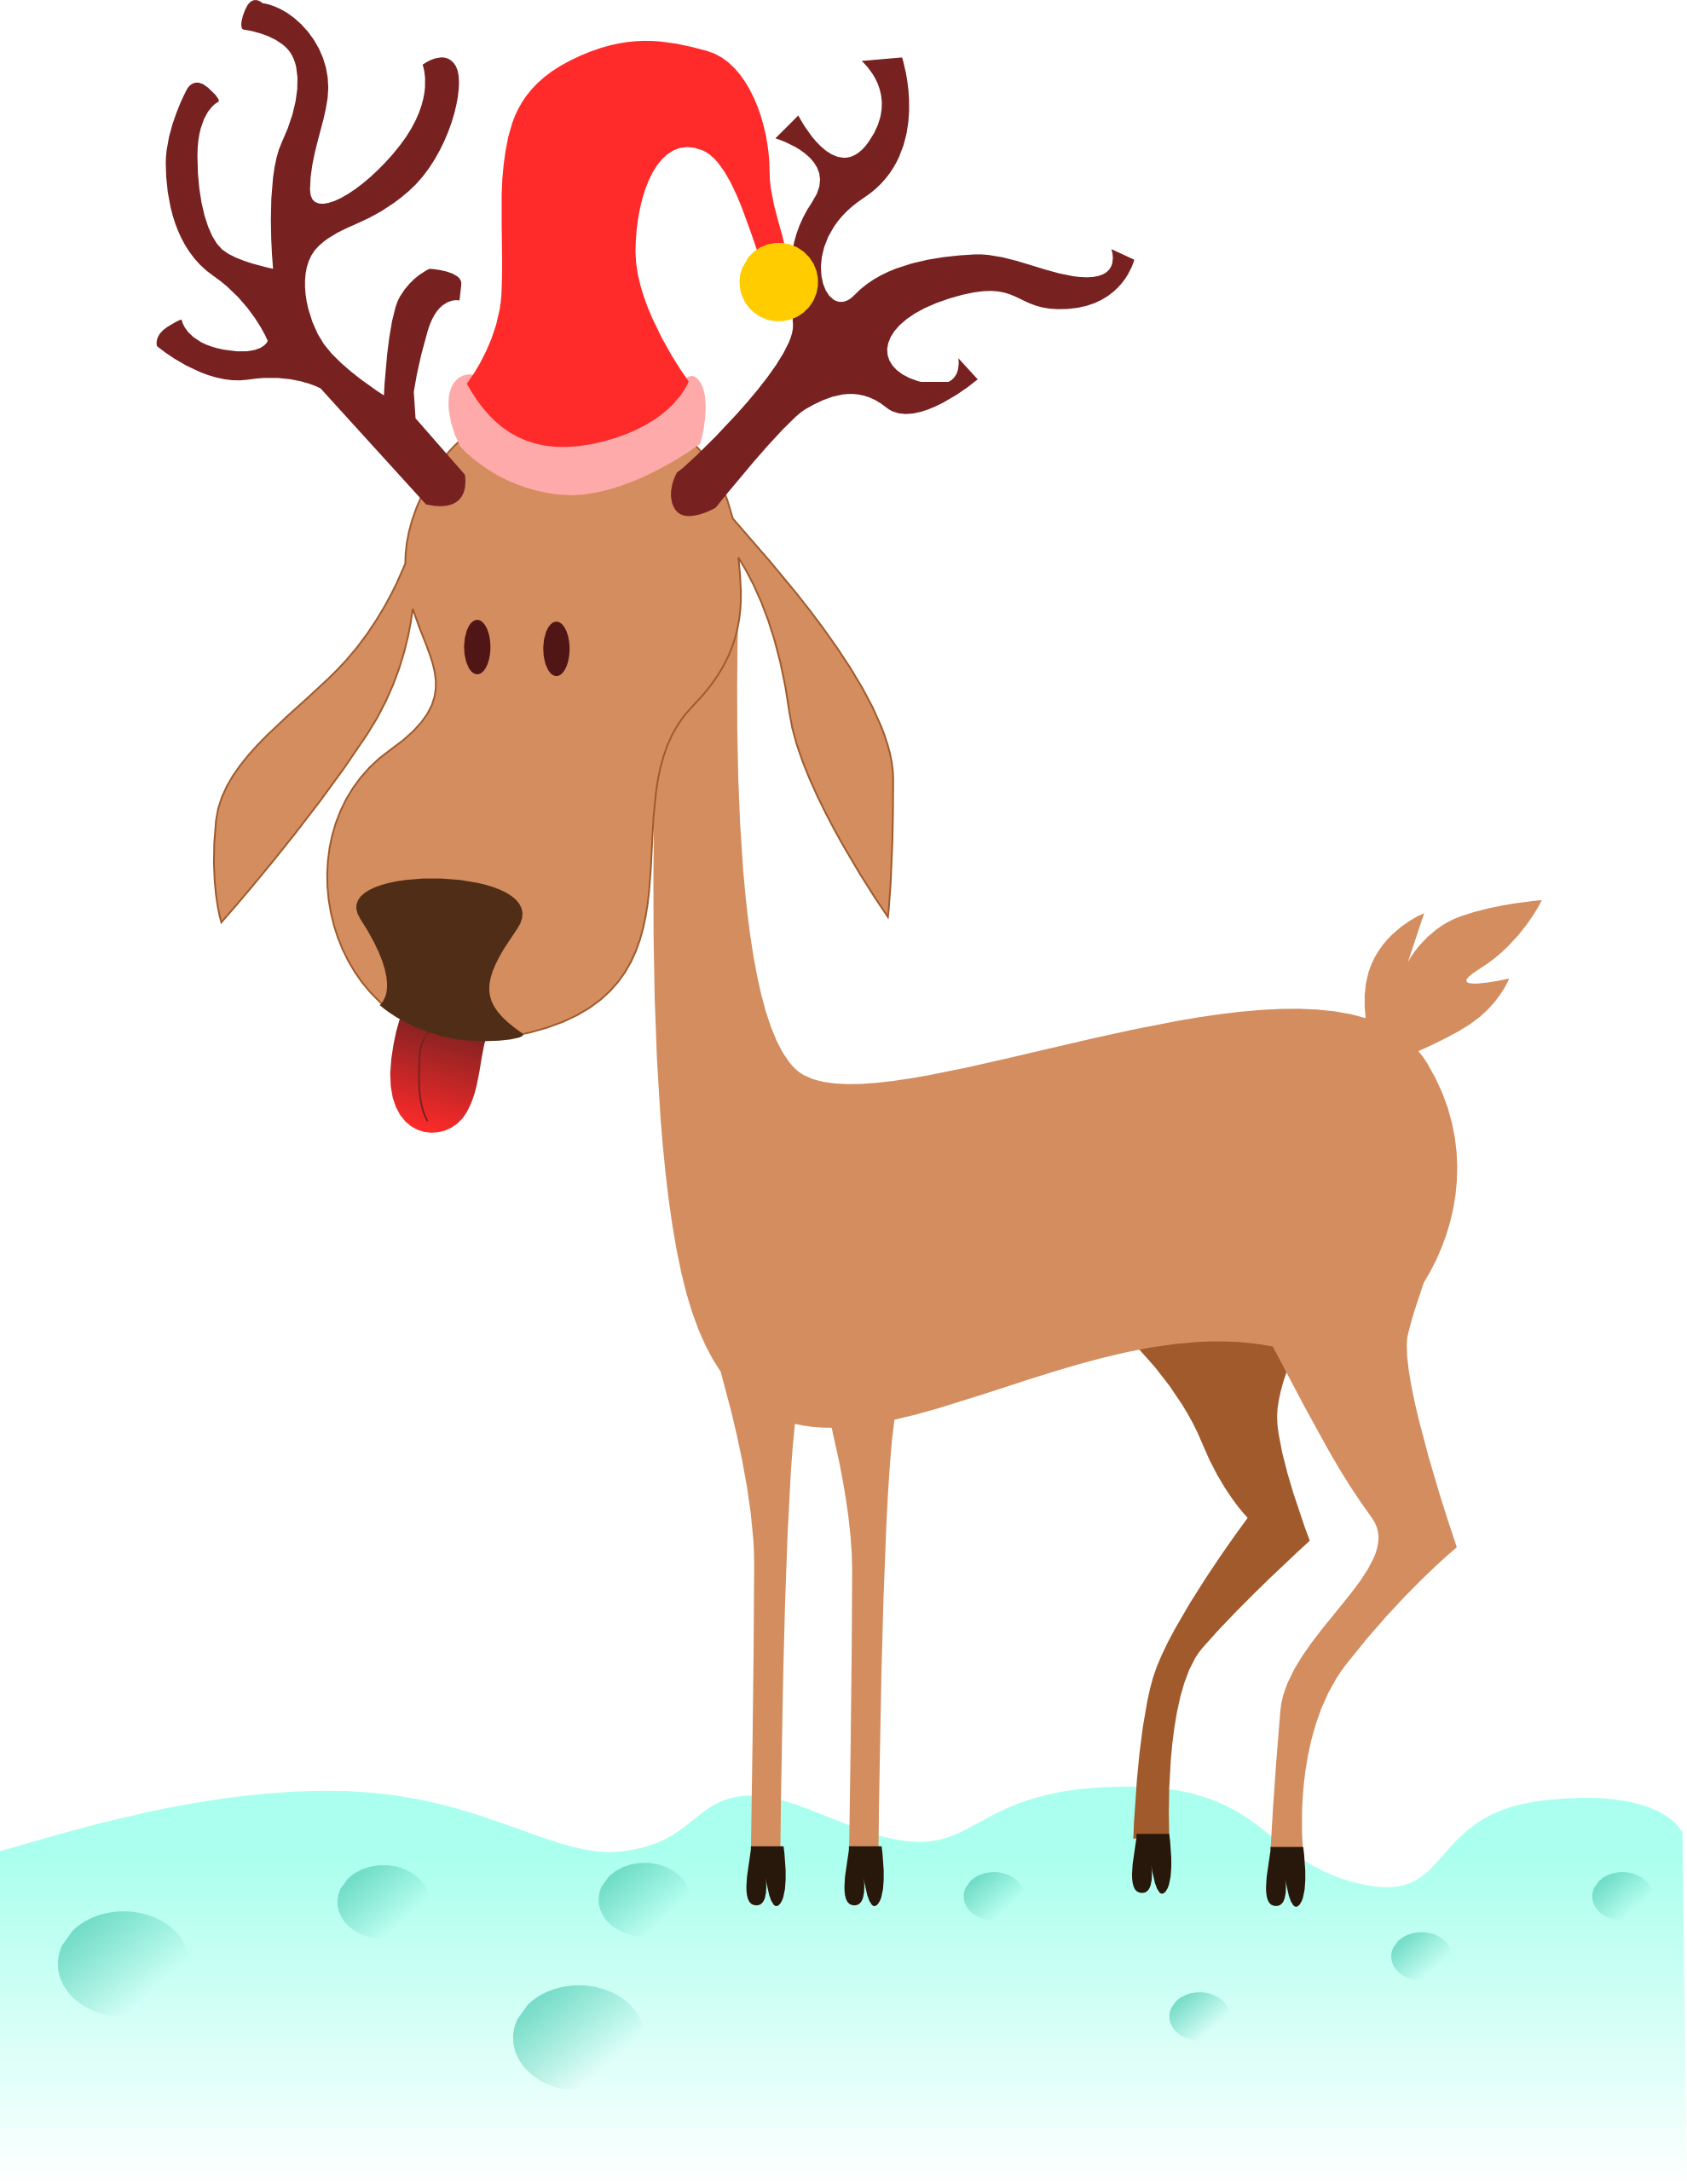 Heartbeat clipart deer. Clipartist net search results